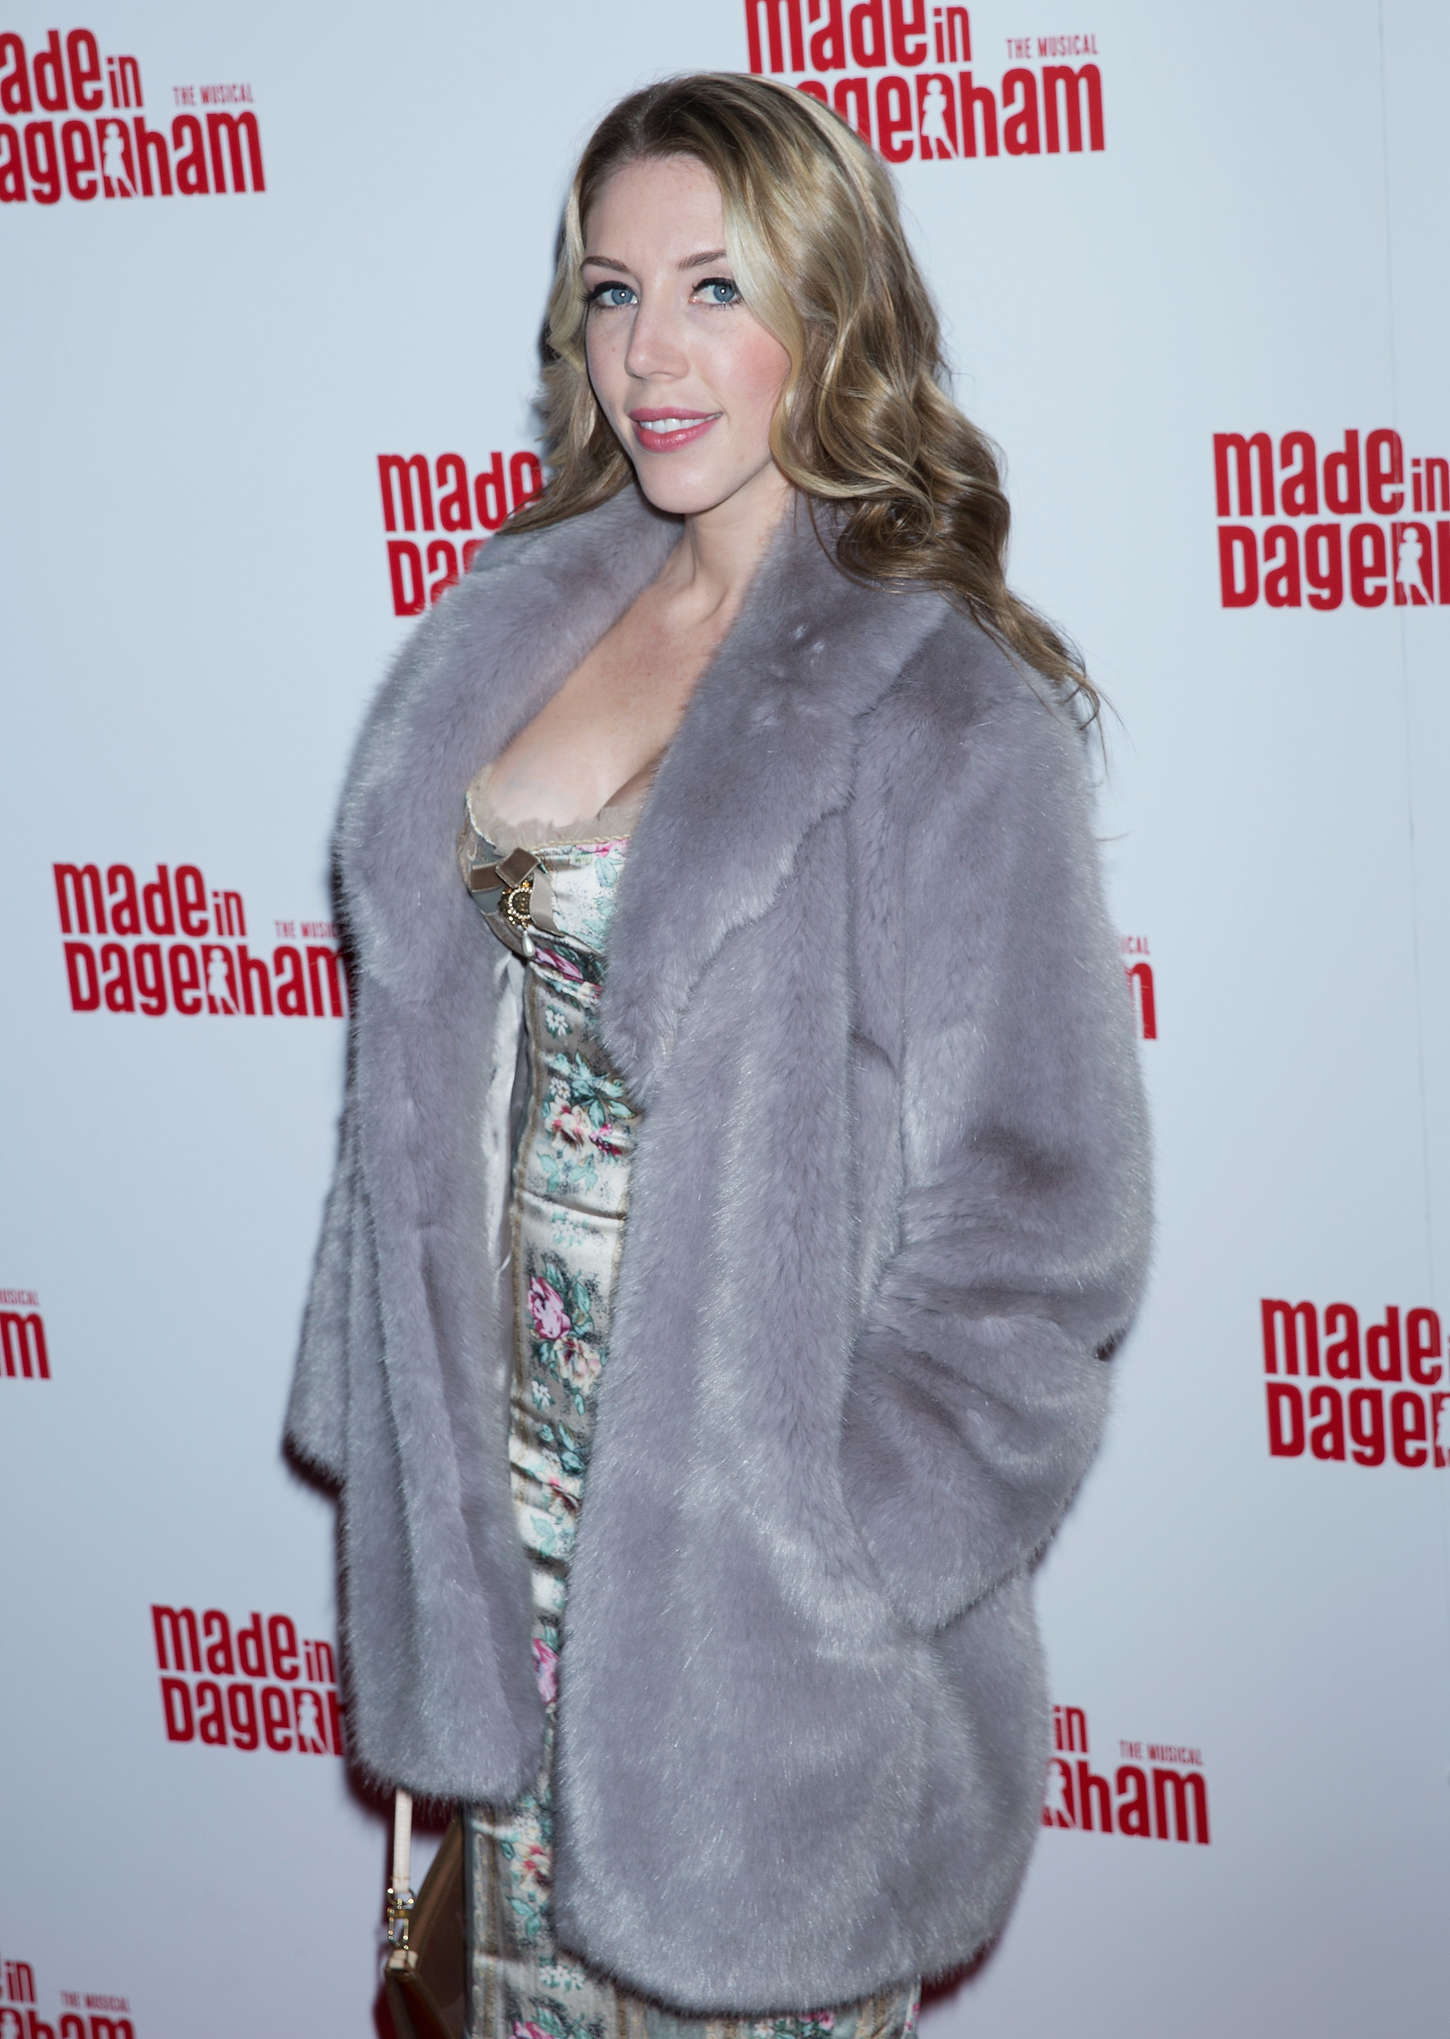 Celebrites Katherine Ryan nude (71 photo), Pussy, Hot, Boobs, underwear 2006